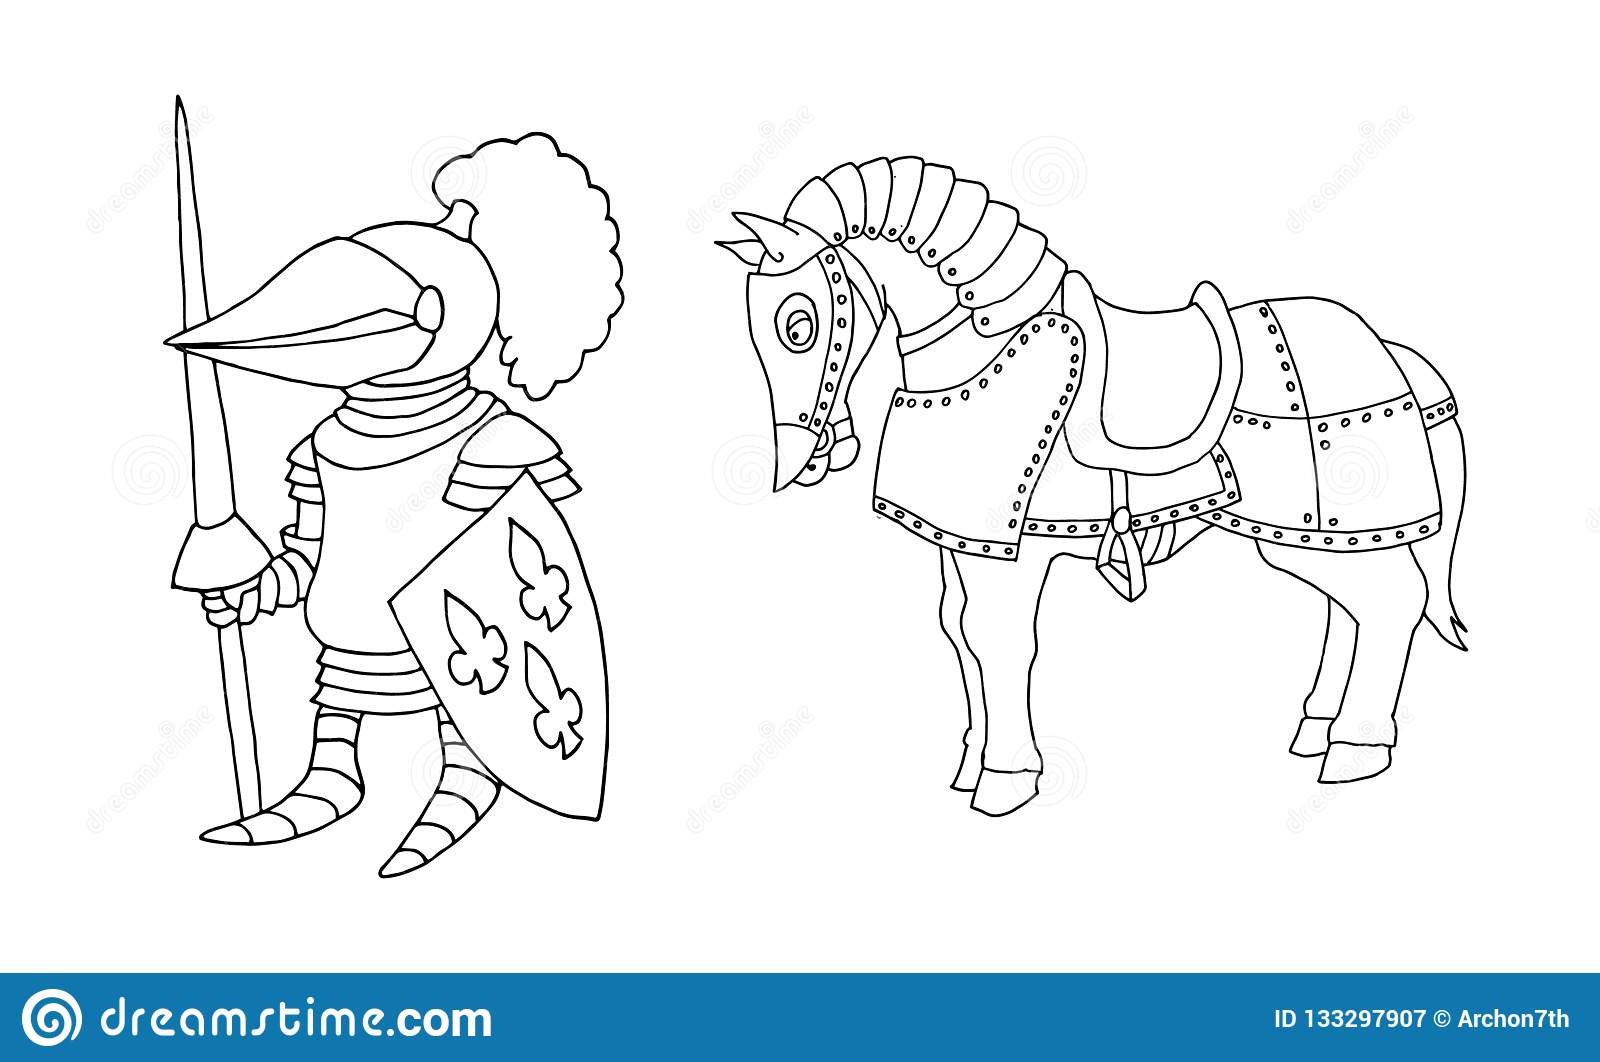 Coloring Page Of Cartoon Medieval Knight Prepering To Knight ...